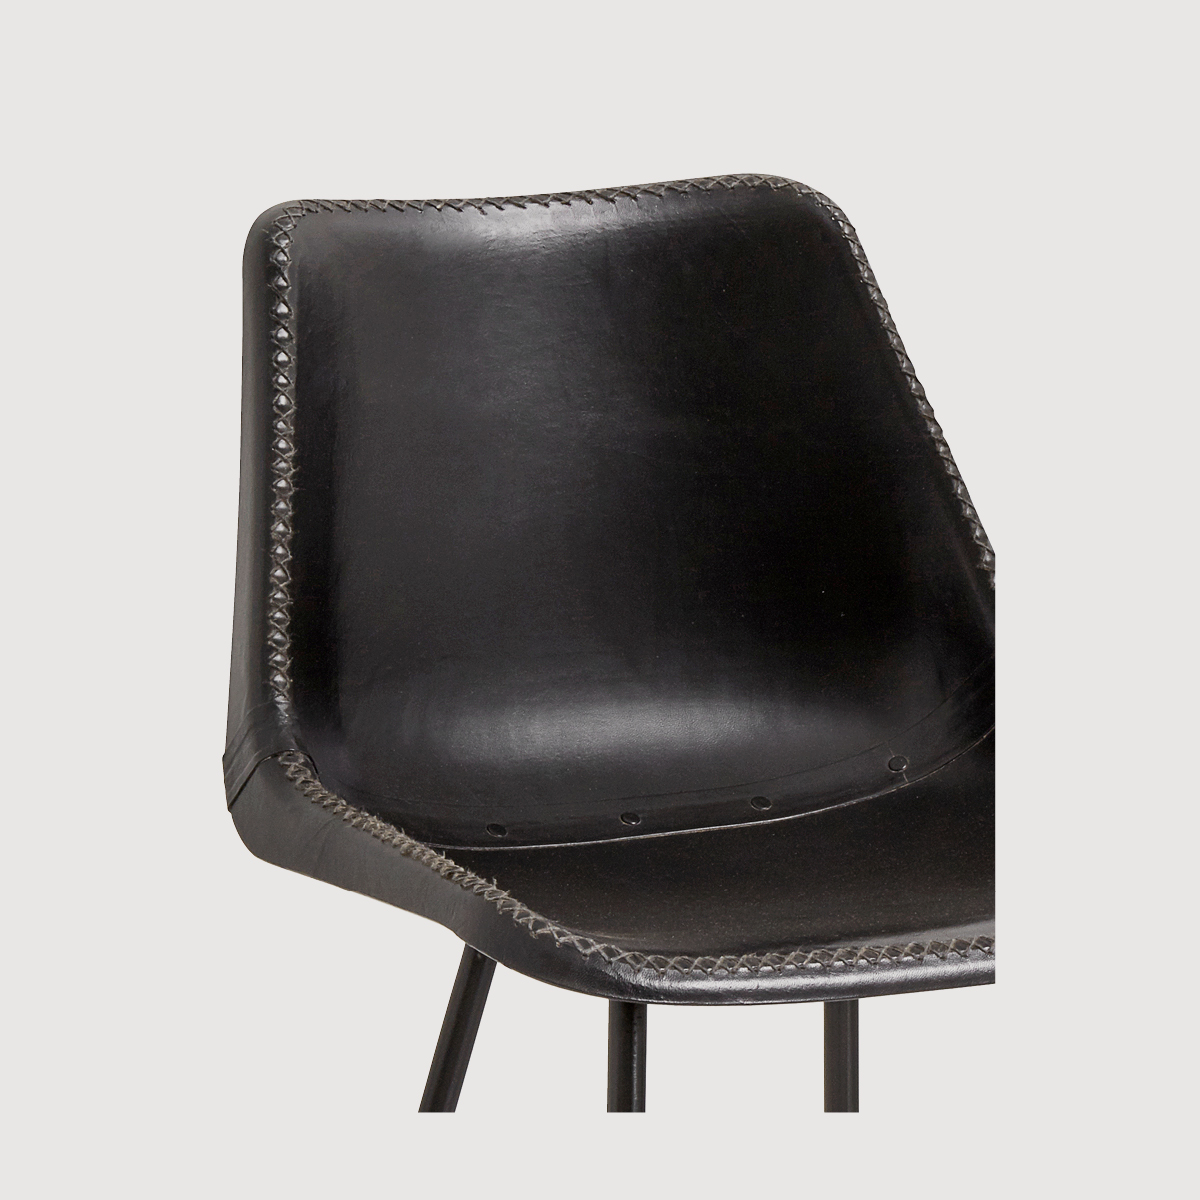 Mersey Leather Chair with Iron Legs – Black gallery image